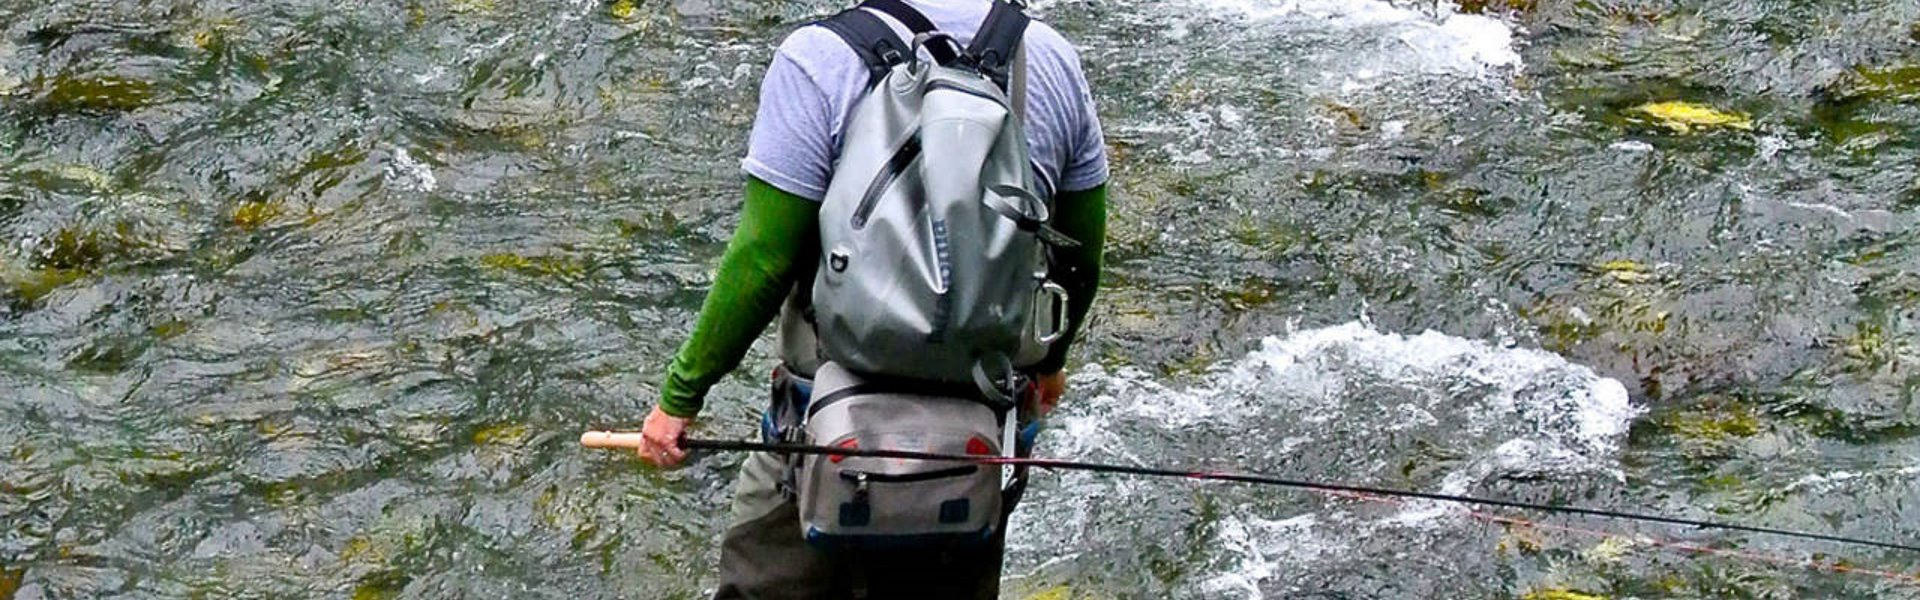 Best Fishing Backpacks Reviewed in Detail